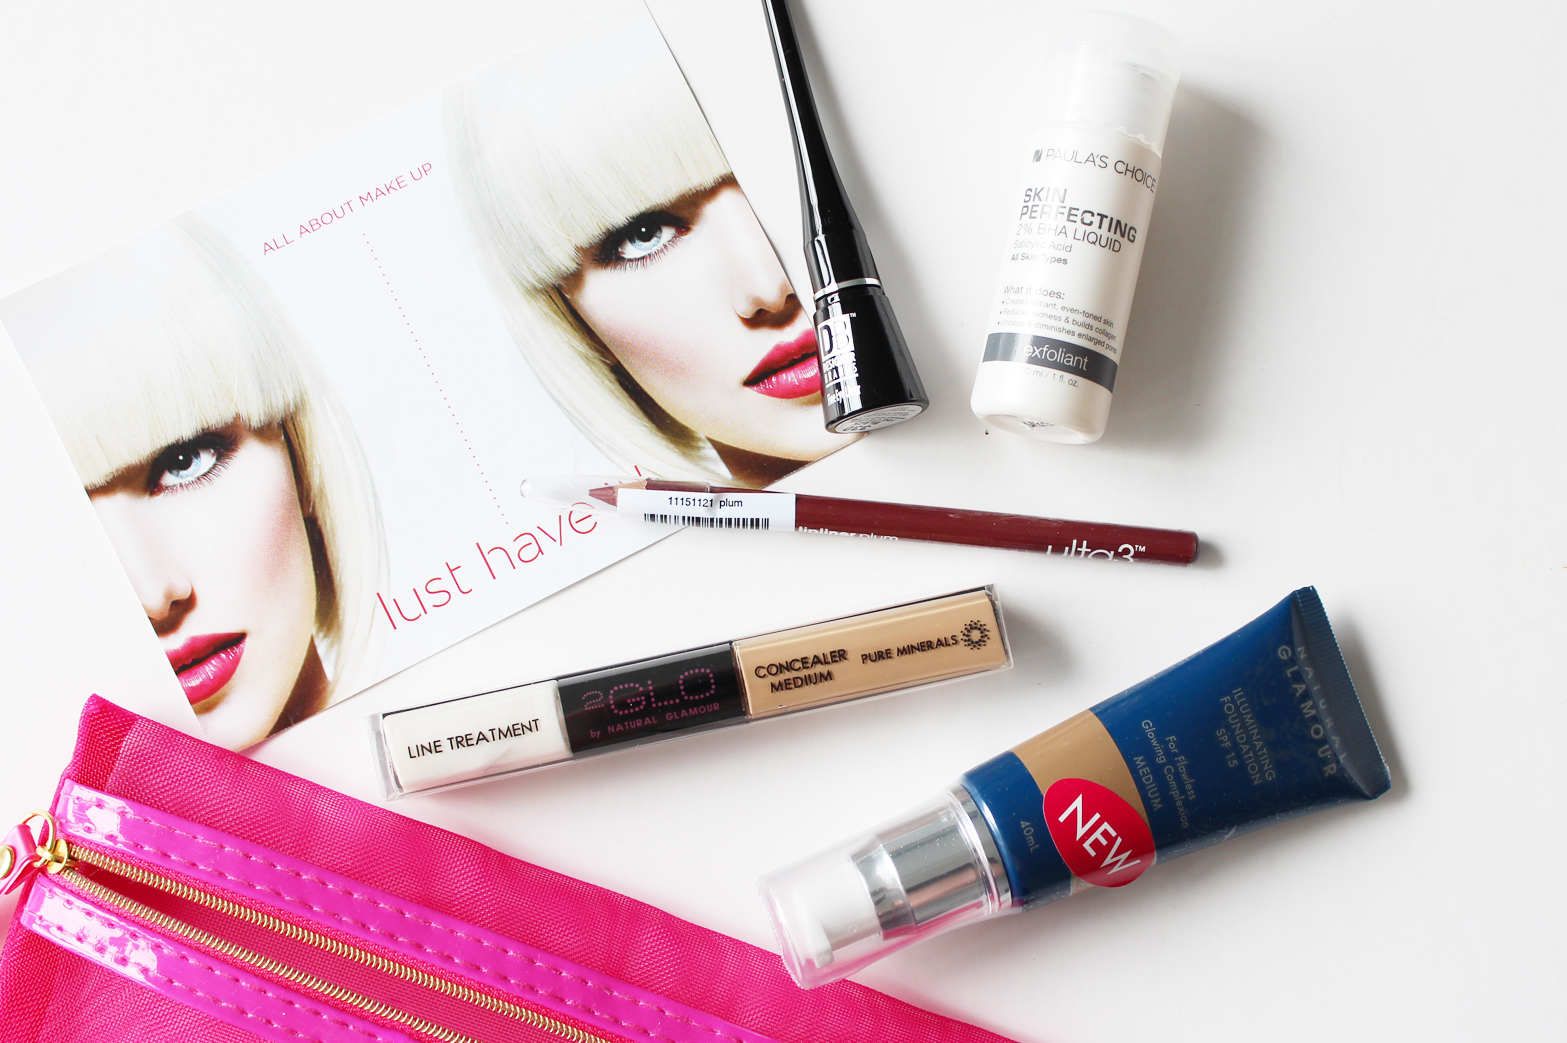 LUST HAVE IT | Women's Beauty Box February '15 - Unboxing + Initial Thoughts - CassandraMyee